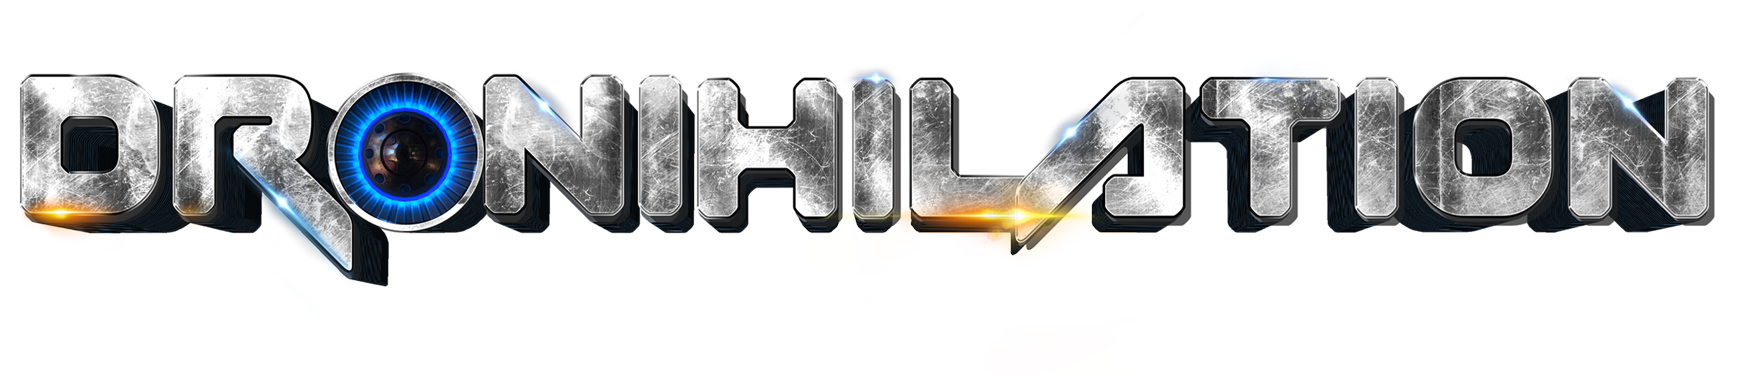 Dronihilation game logo